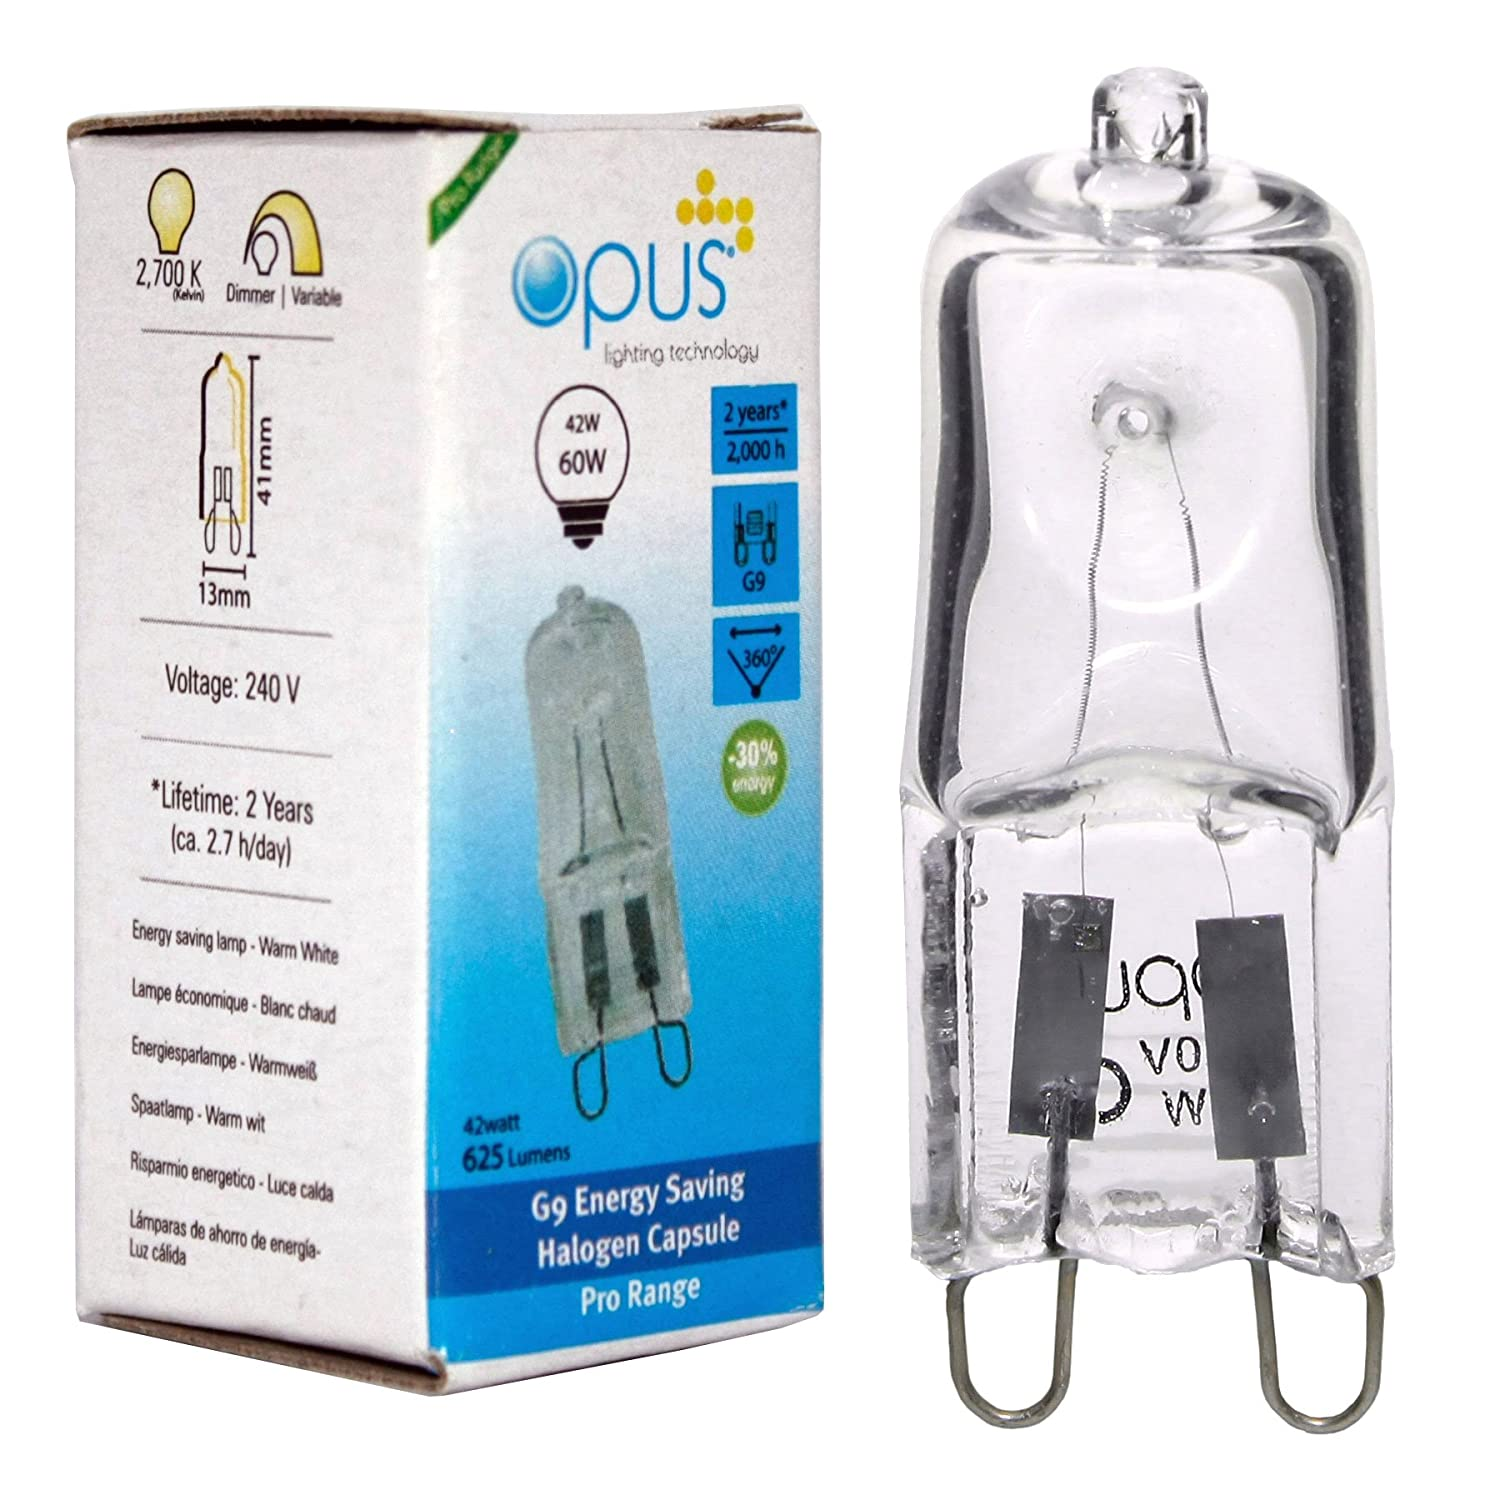 Opus G9 42W = 60W 240V Mains Clear Long Life Eco Halogen Energy Saving Capsule Lamp Dimmable Light Bulb